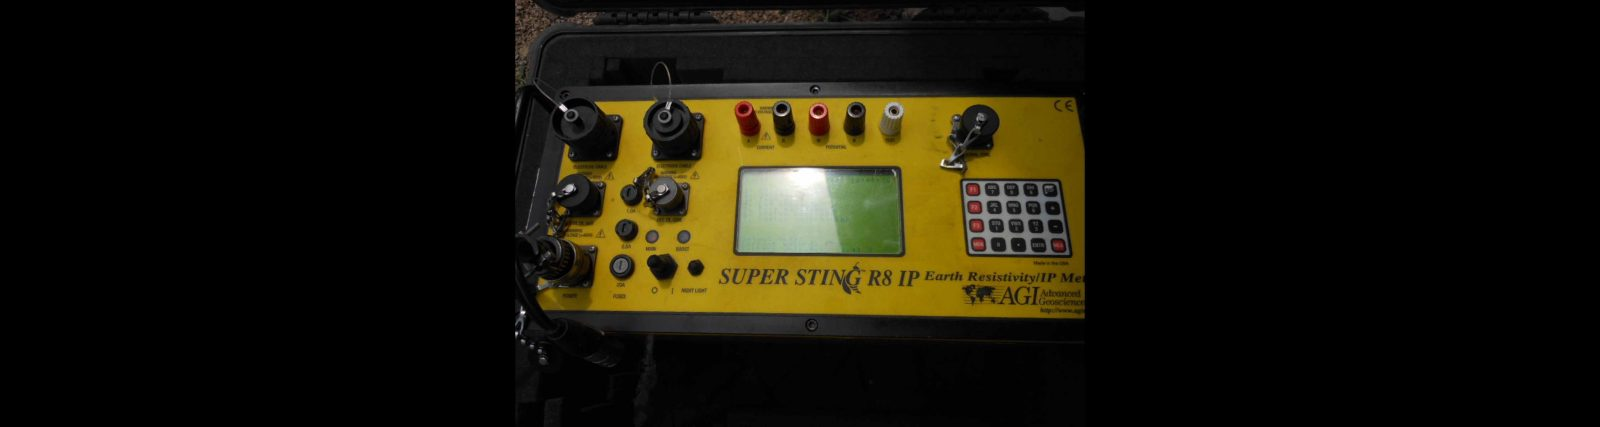 Earth Resistivity Meter SuperSting